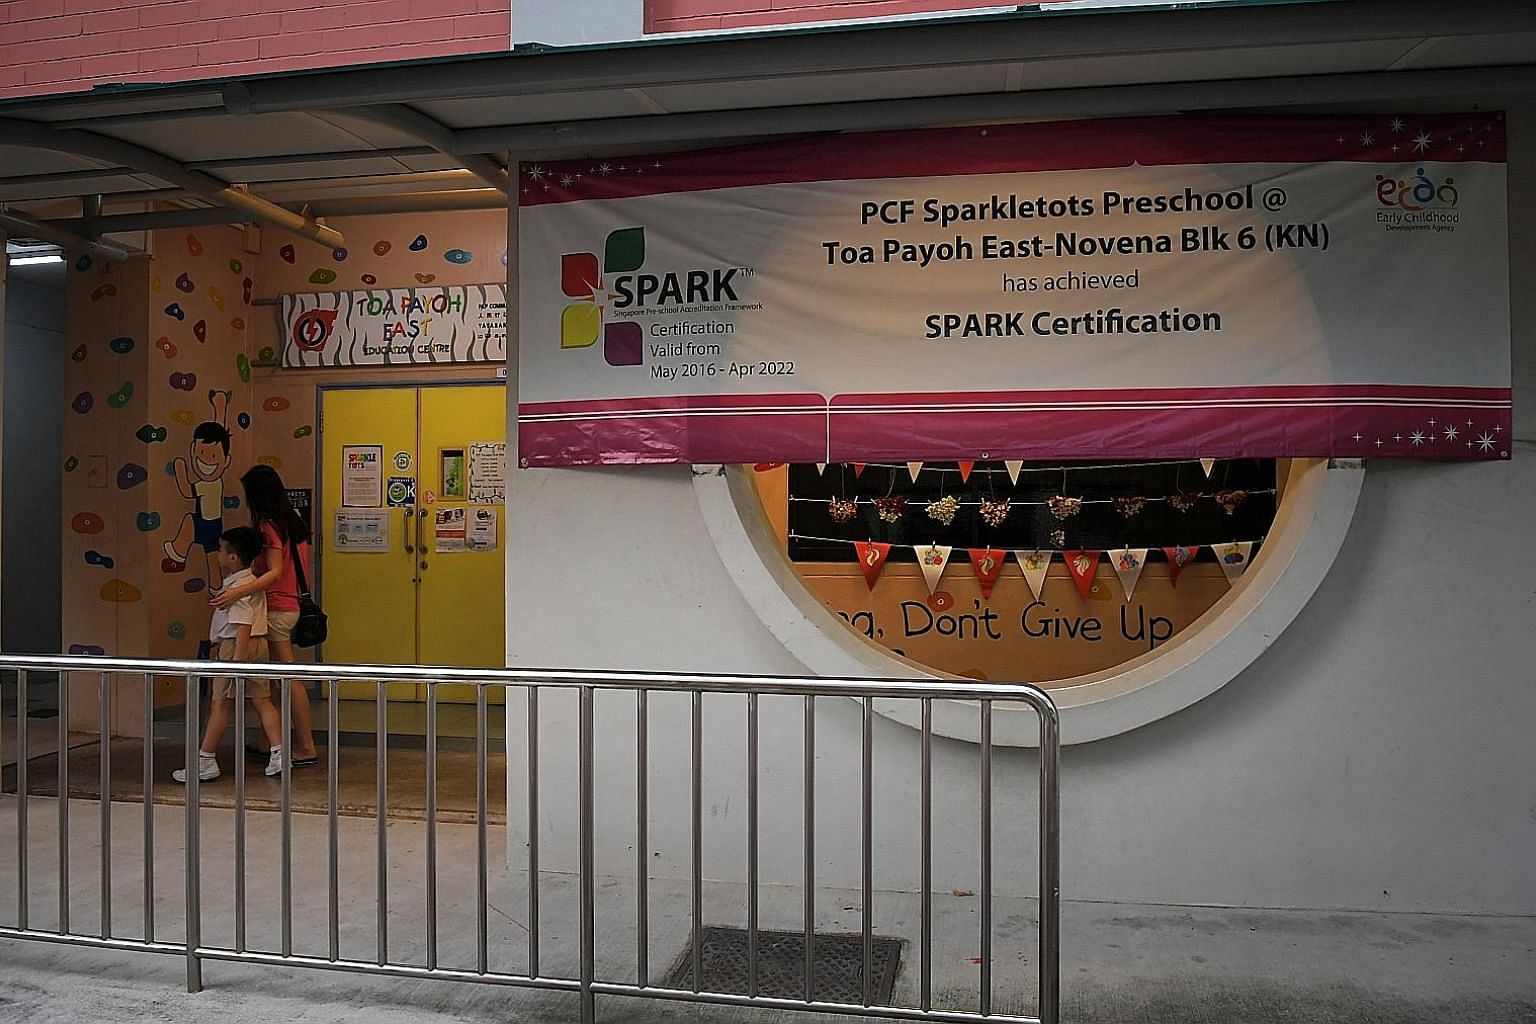 PCF Sparkletots at Toa Payoh East-Novena, which will partner the MOE Kindergarten at First Toa Payoh Primary opening in 2019.